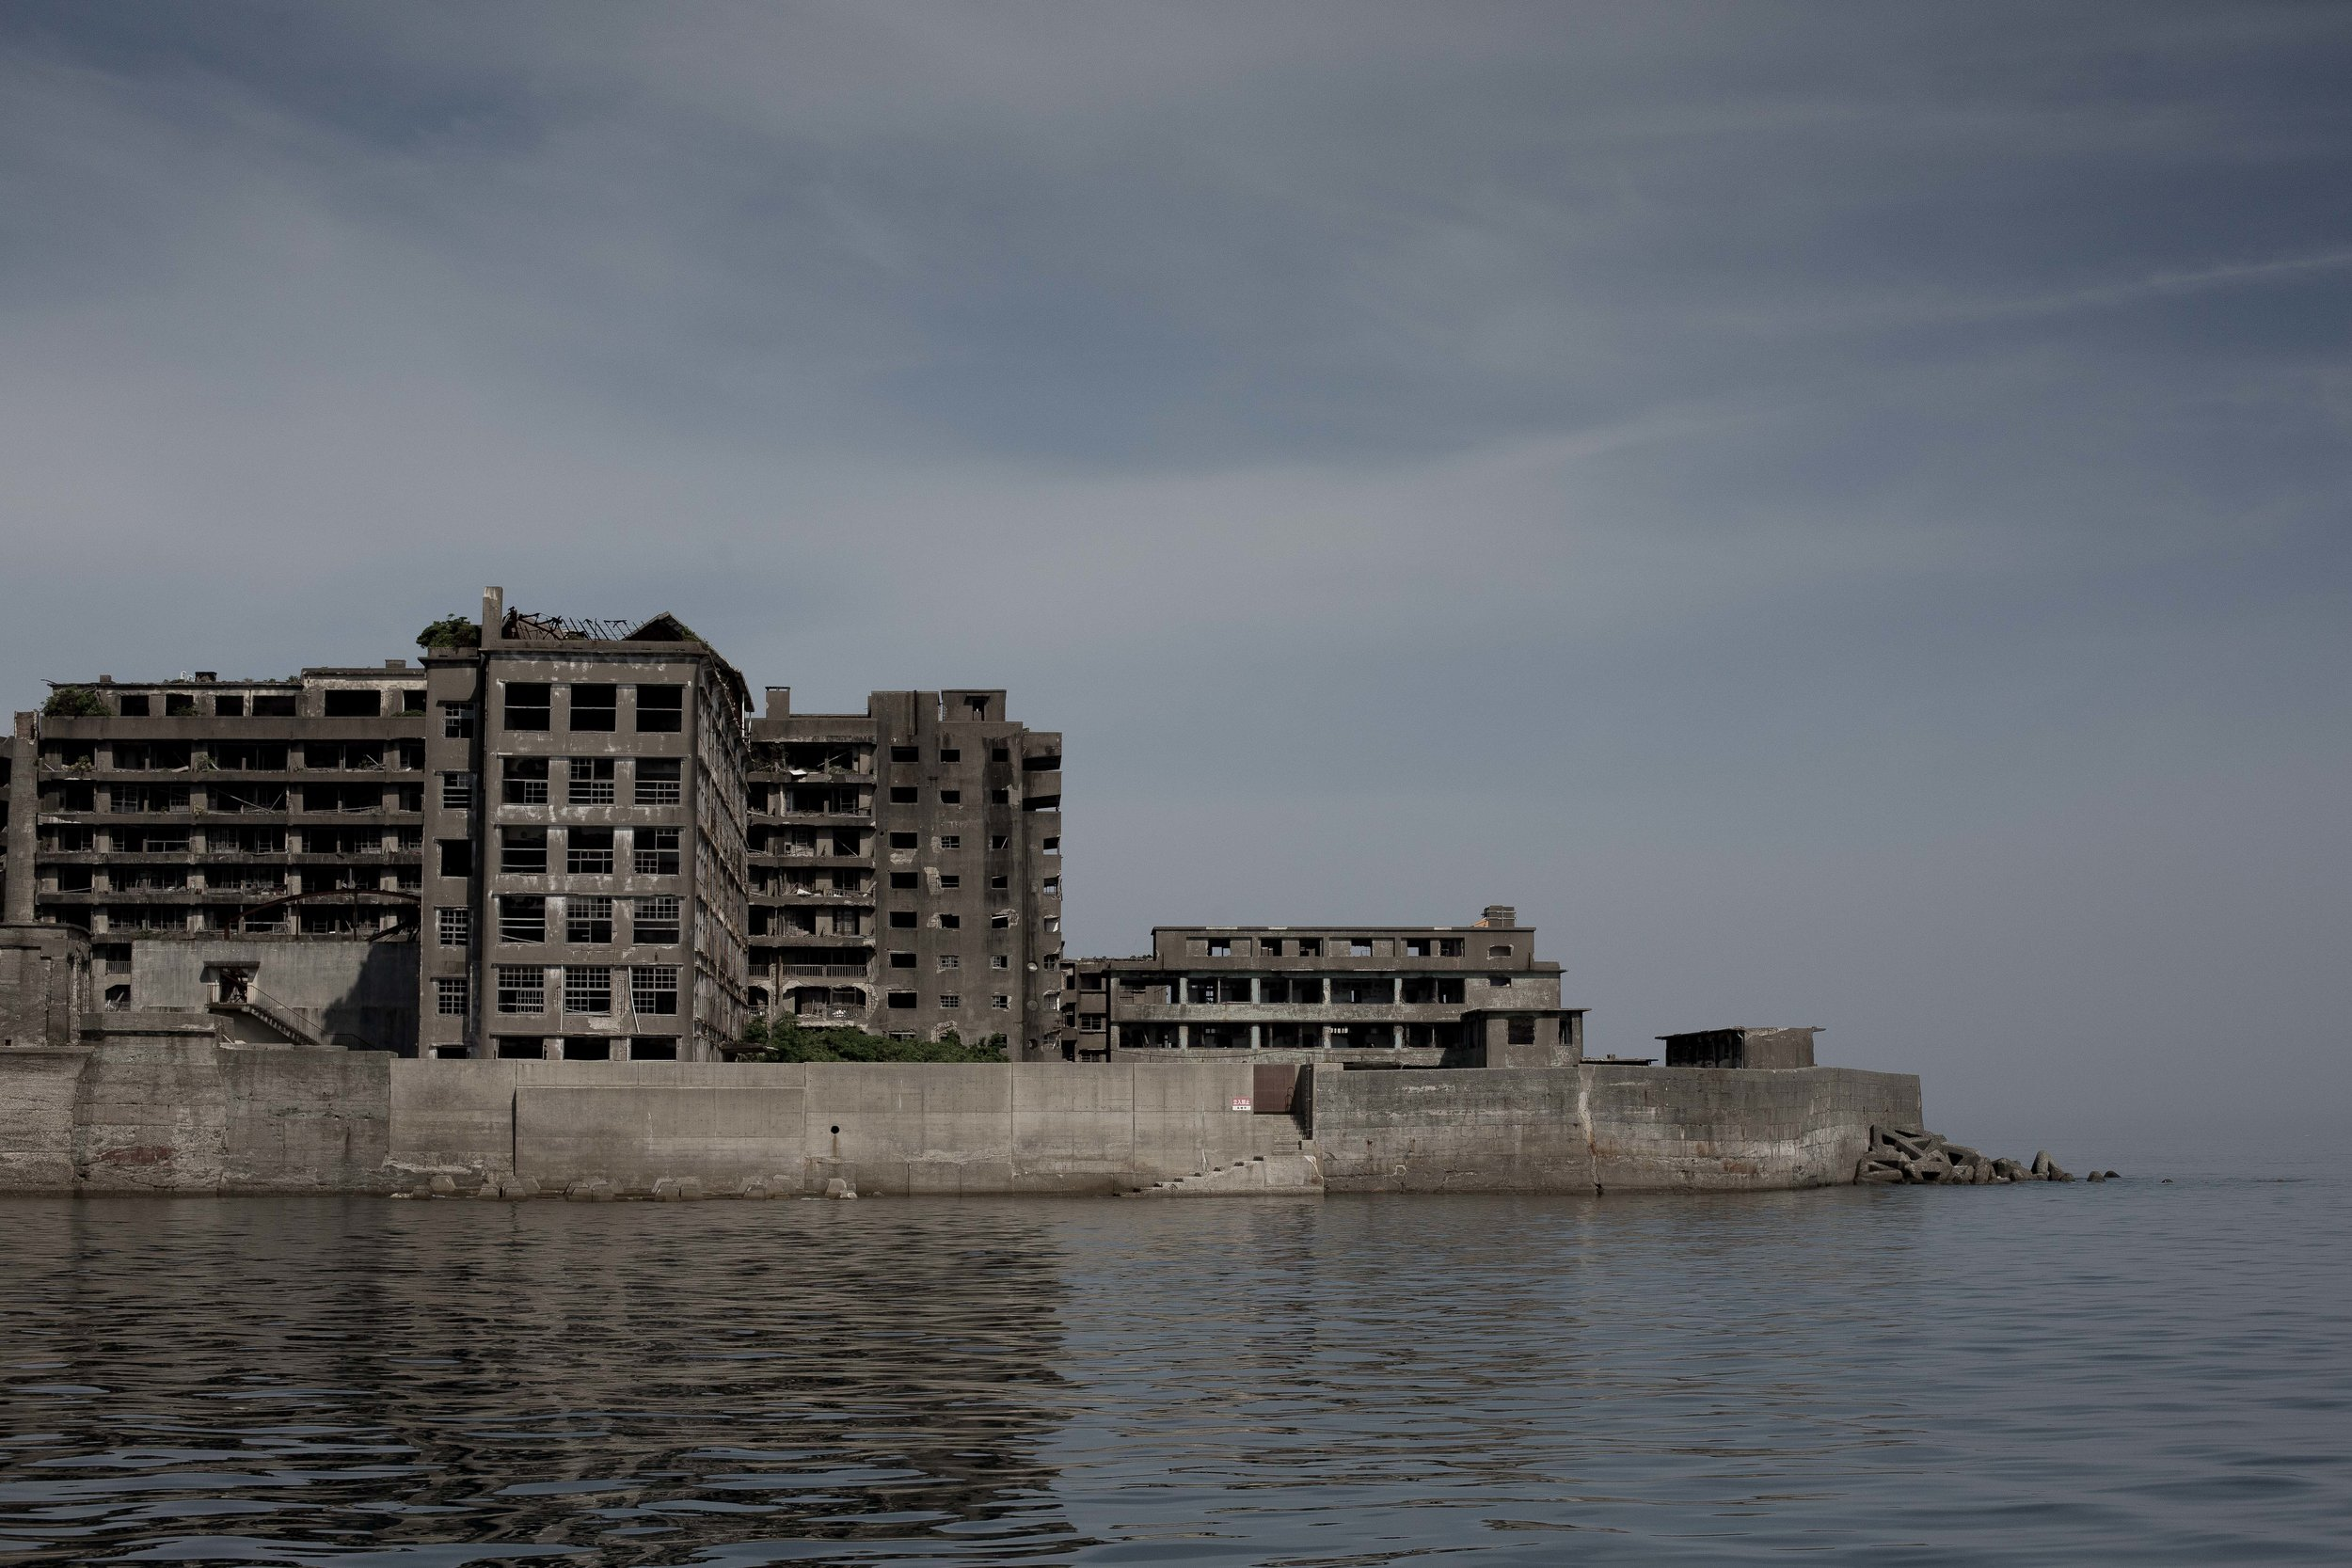 We motored past Hashima Island on our way from Nomo Ko to Nagaski.